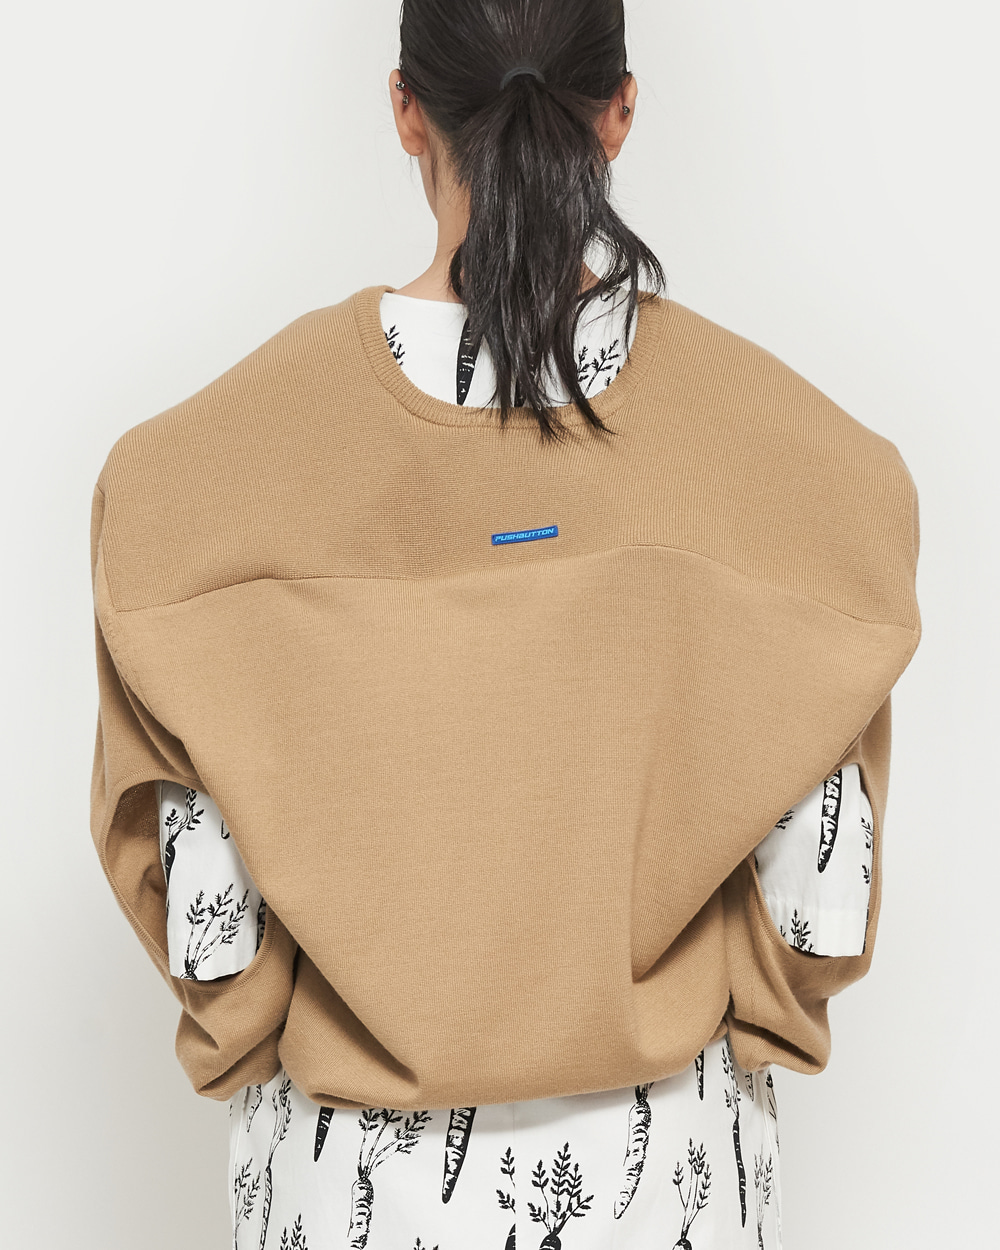 SS19 BOX SHOULDER V-NECK KNIT